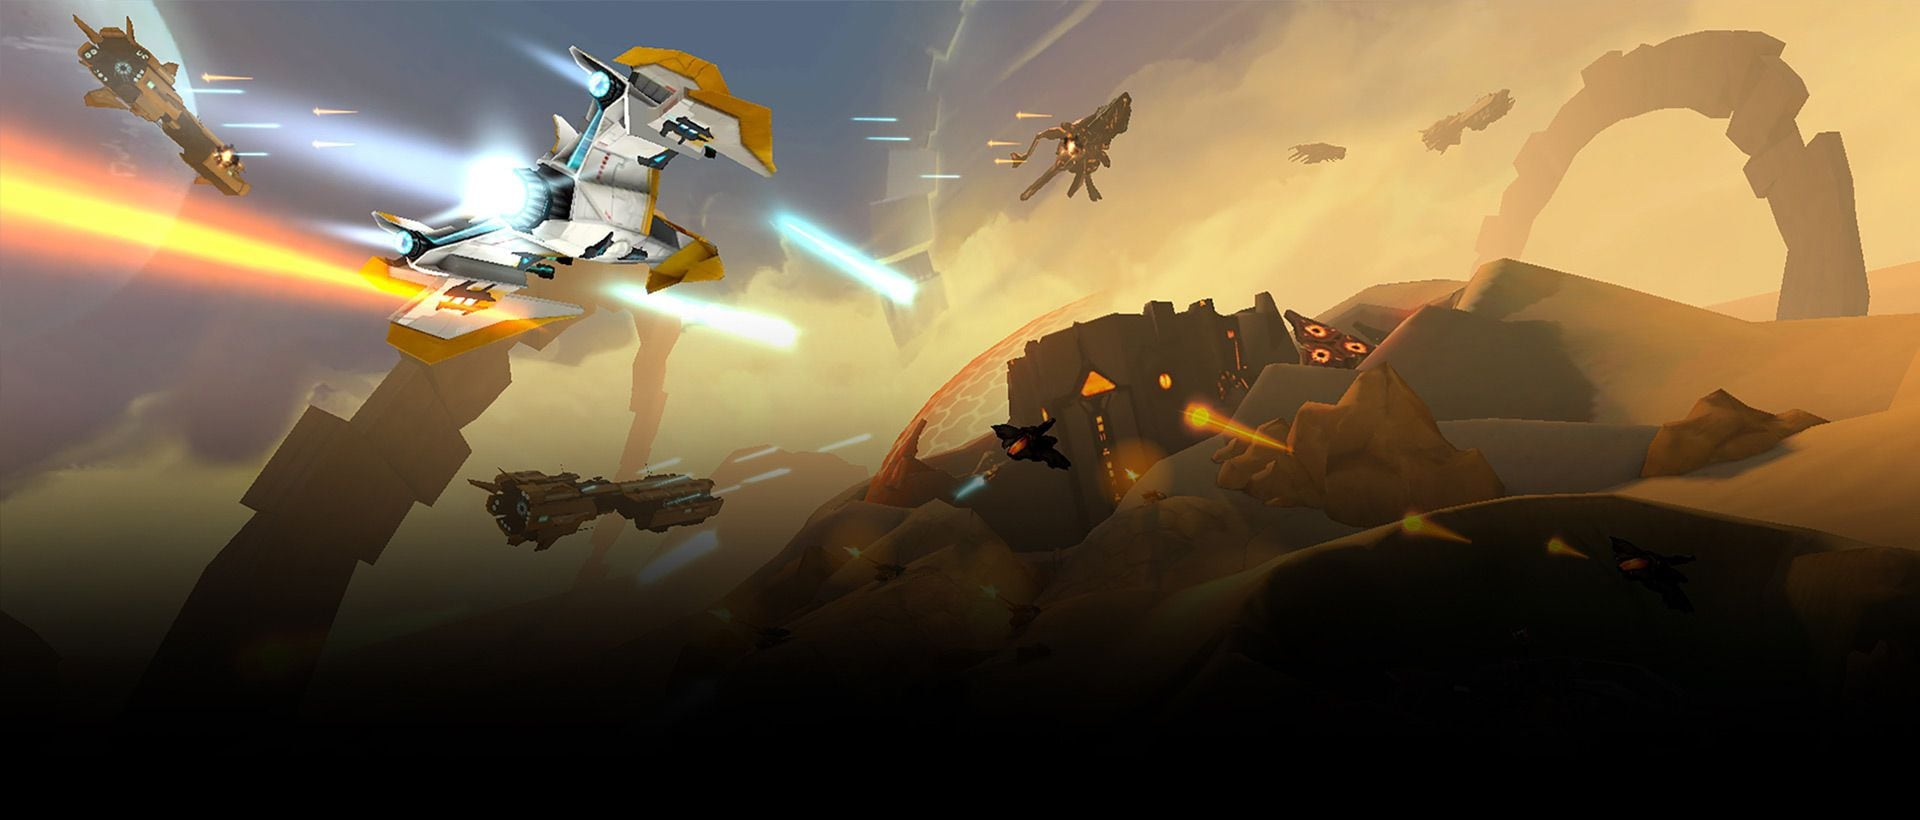 Example image 3 of Gear VR game Anshar Wars 2